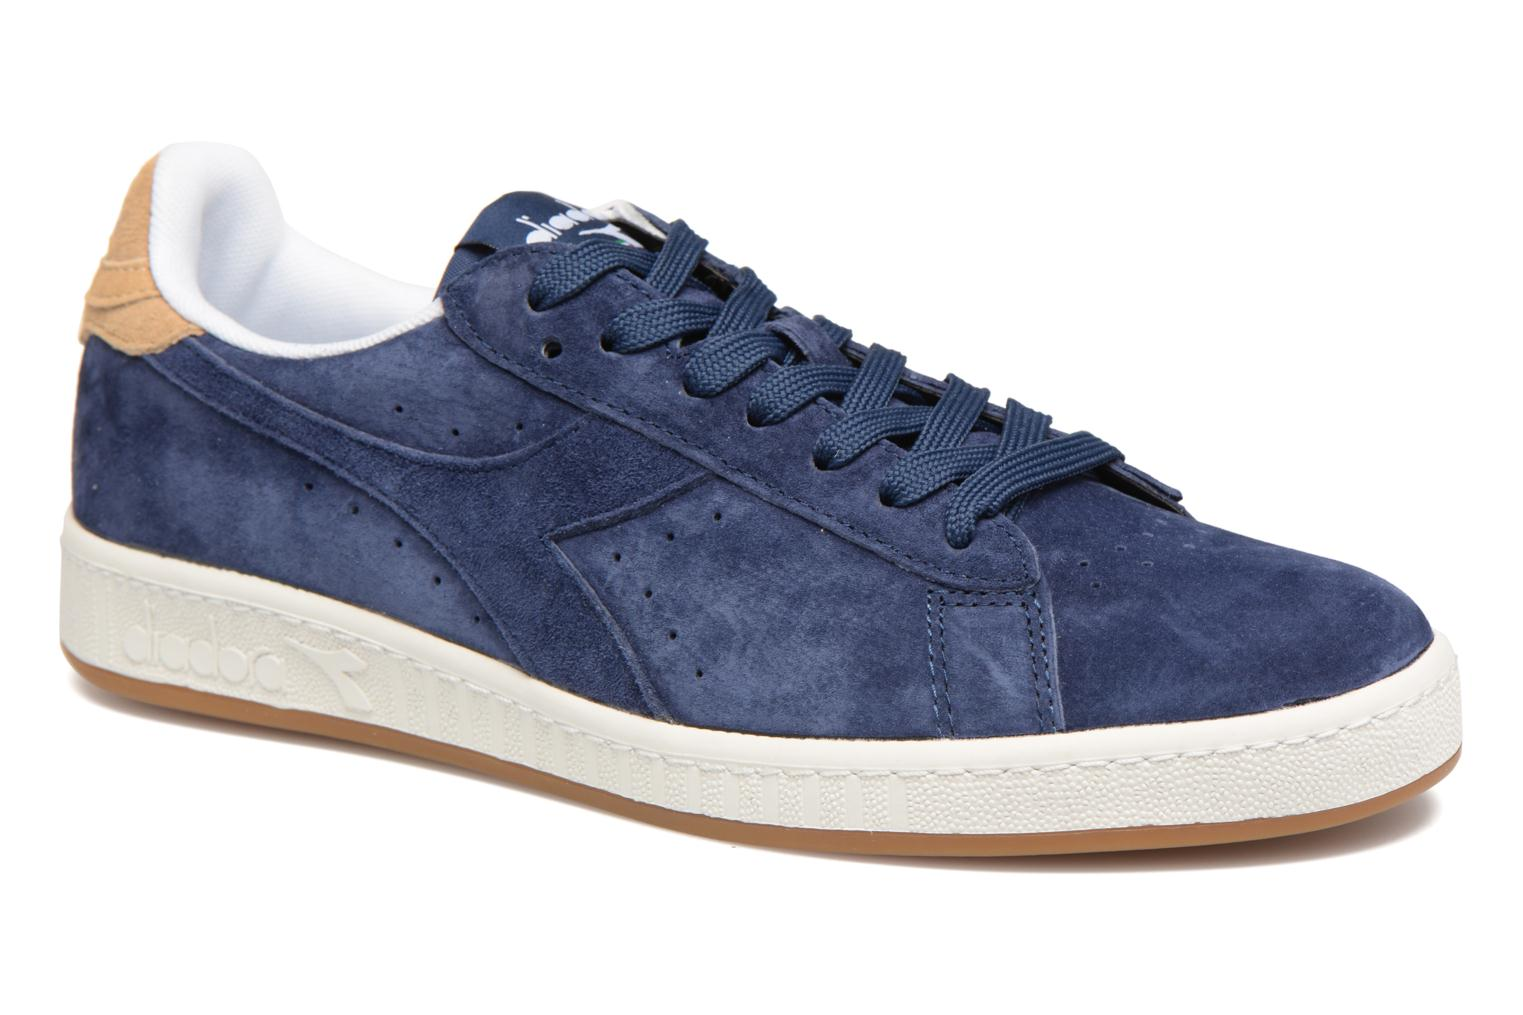 Marques Chaussure homme Diadora homme GAME LOW S BLU ESTATE